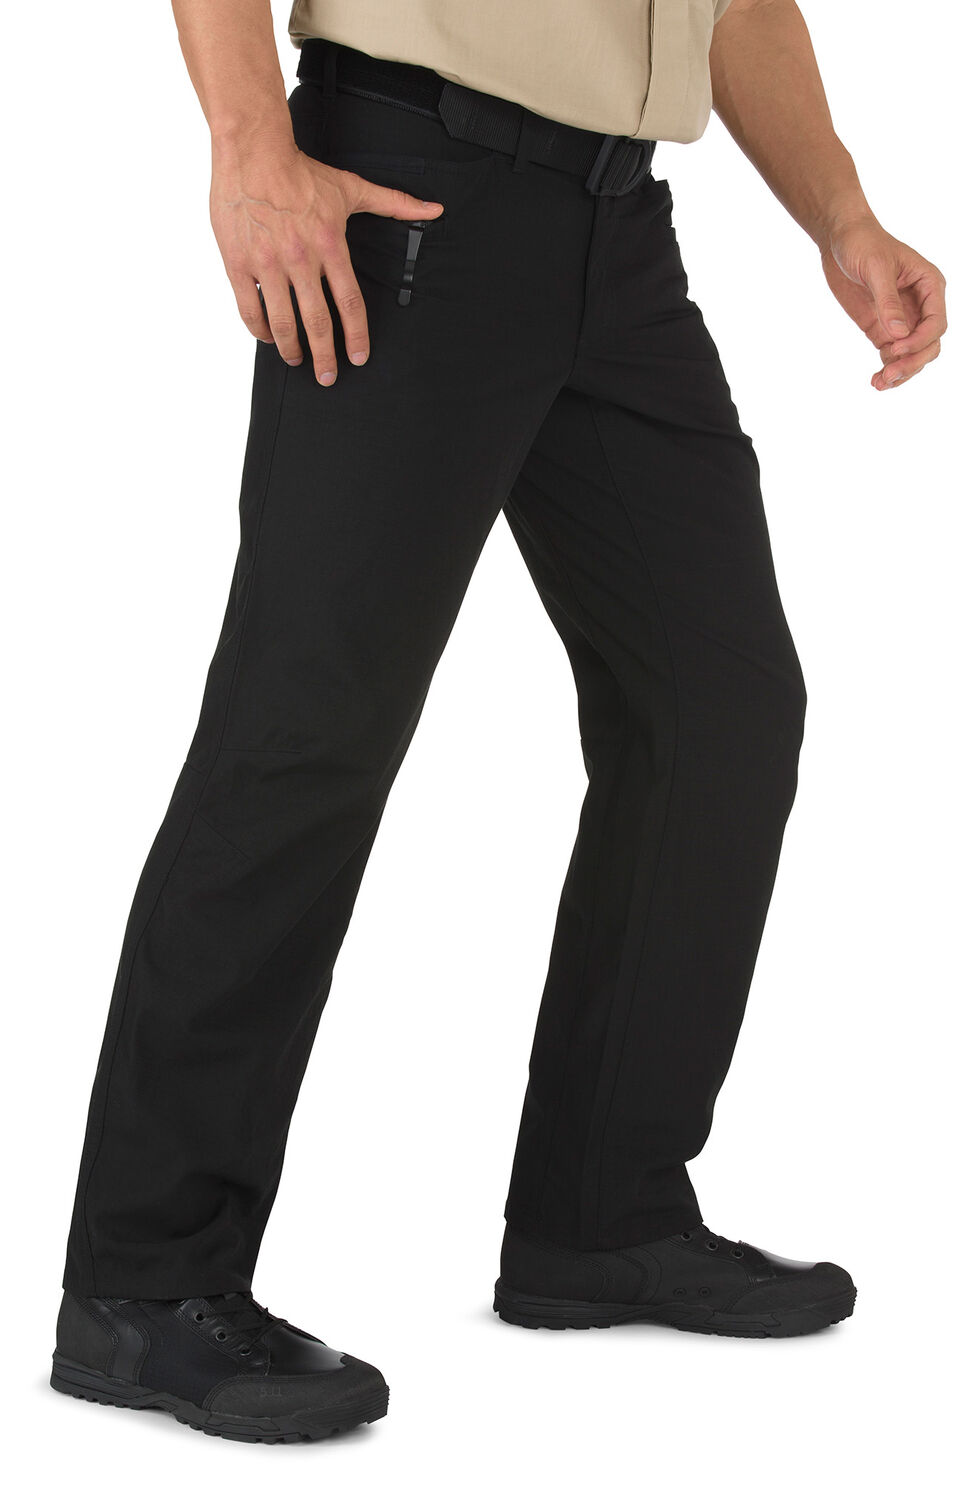 5.11 Tactical Ridgeline Pants, Black, hi-res